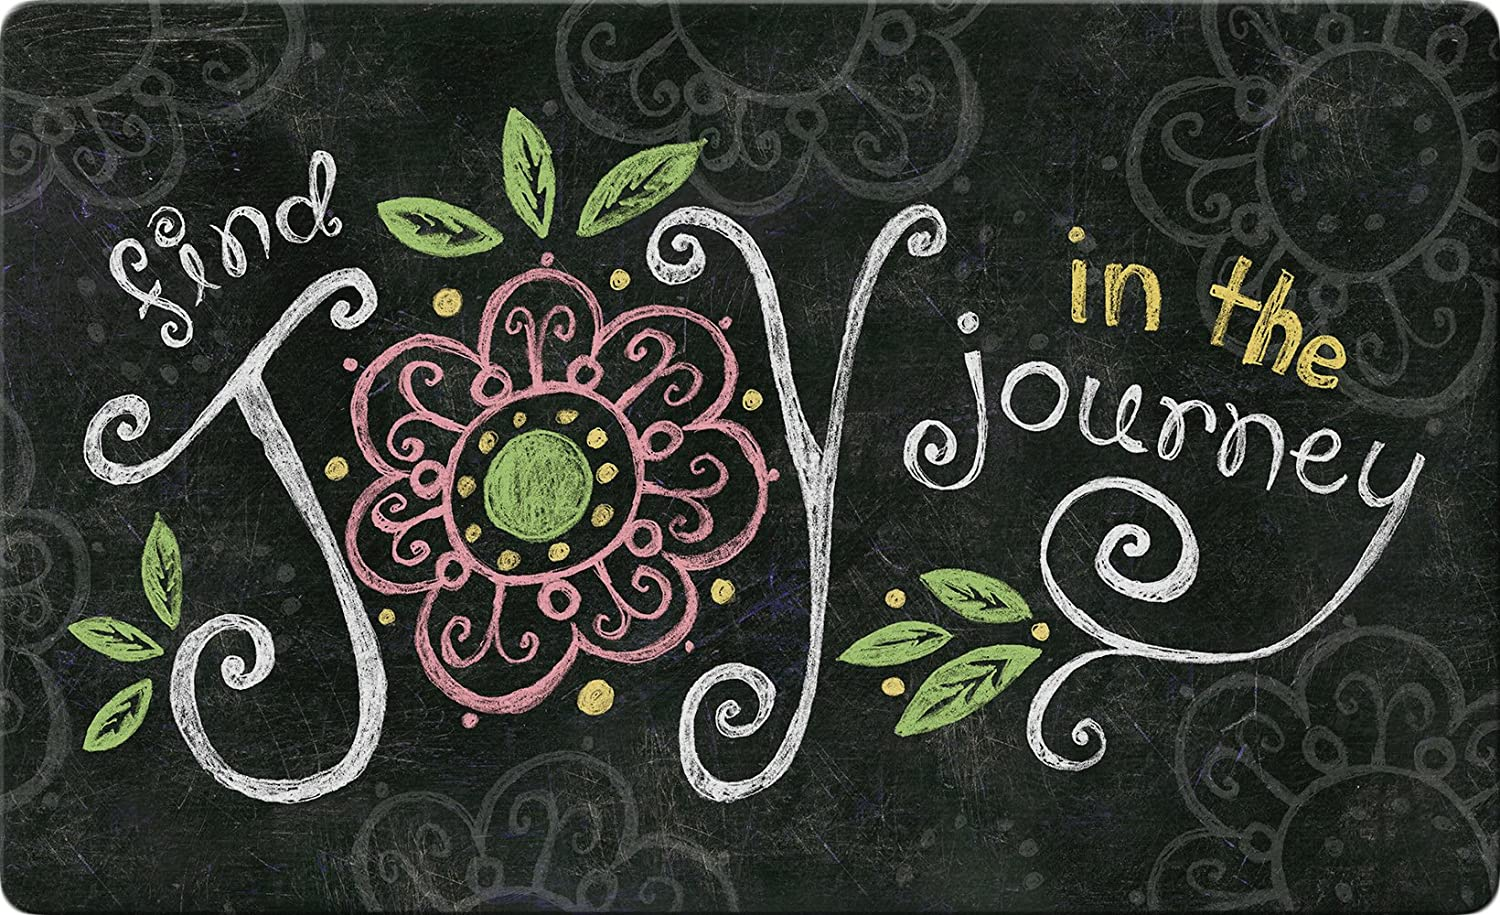 Toland Home Garden Joy in The Journey Chalkboard 18 x 30 Inch Decorative Floor Mat Inspirational Doormat